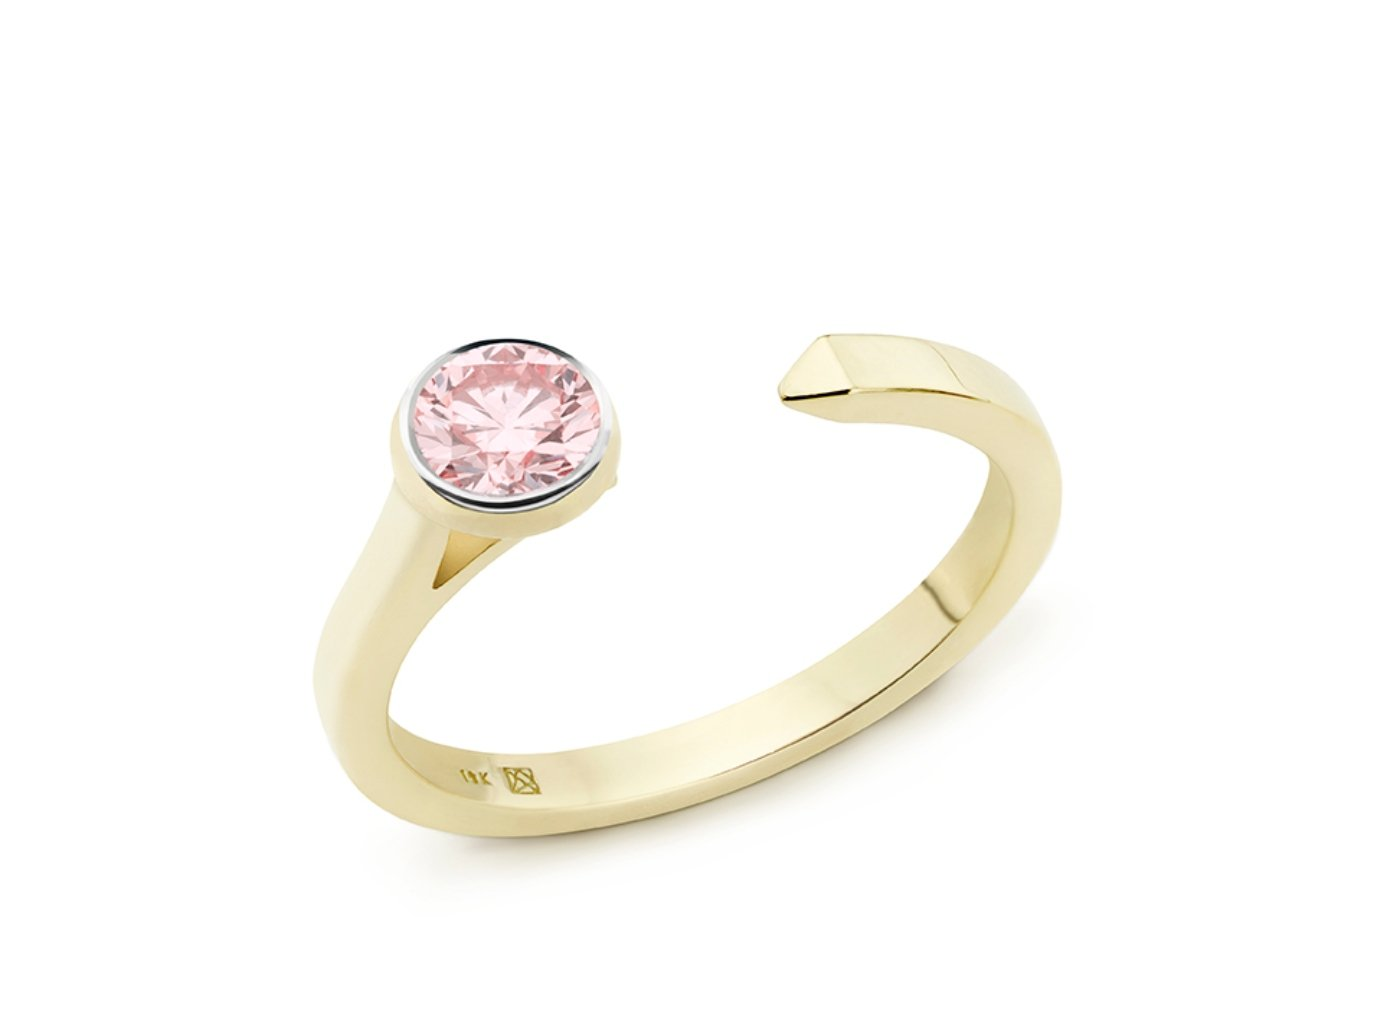 Side view of Solitaire open top 3/8 carat ring with pink diamond